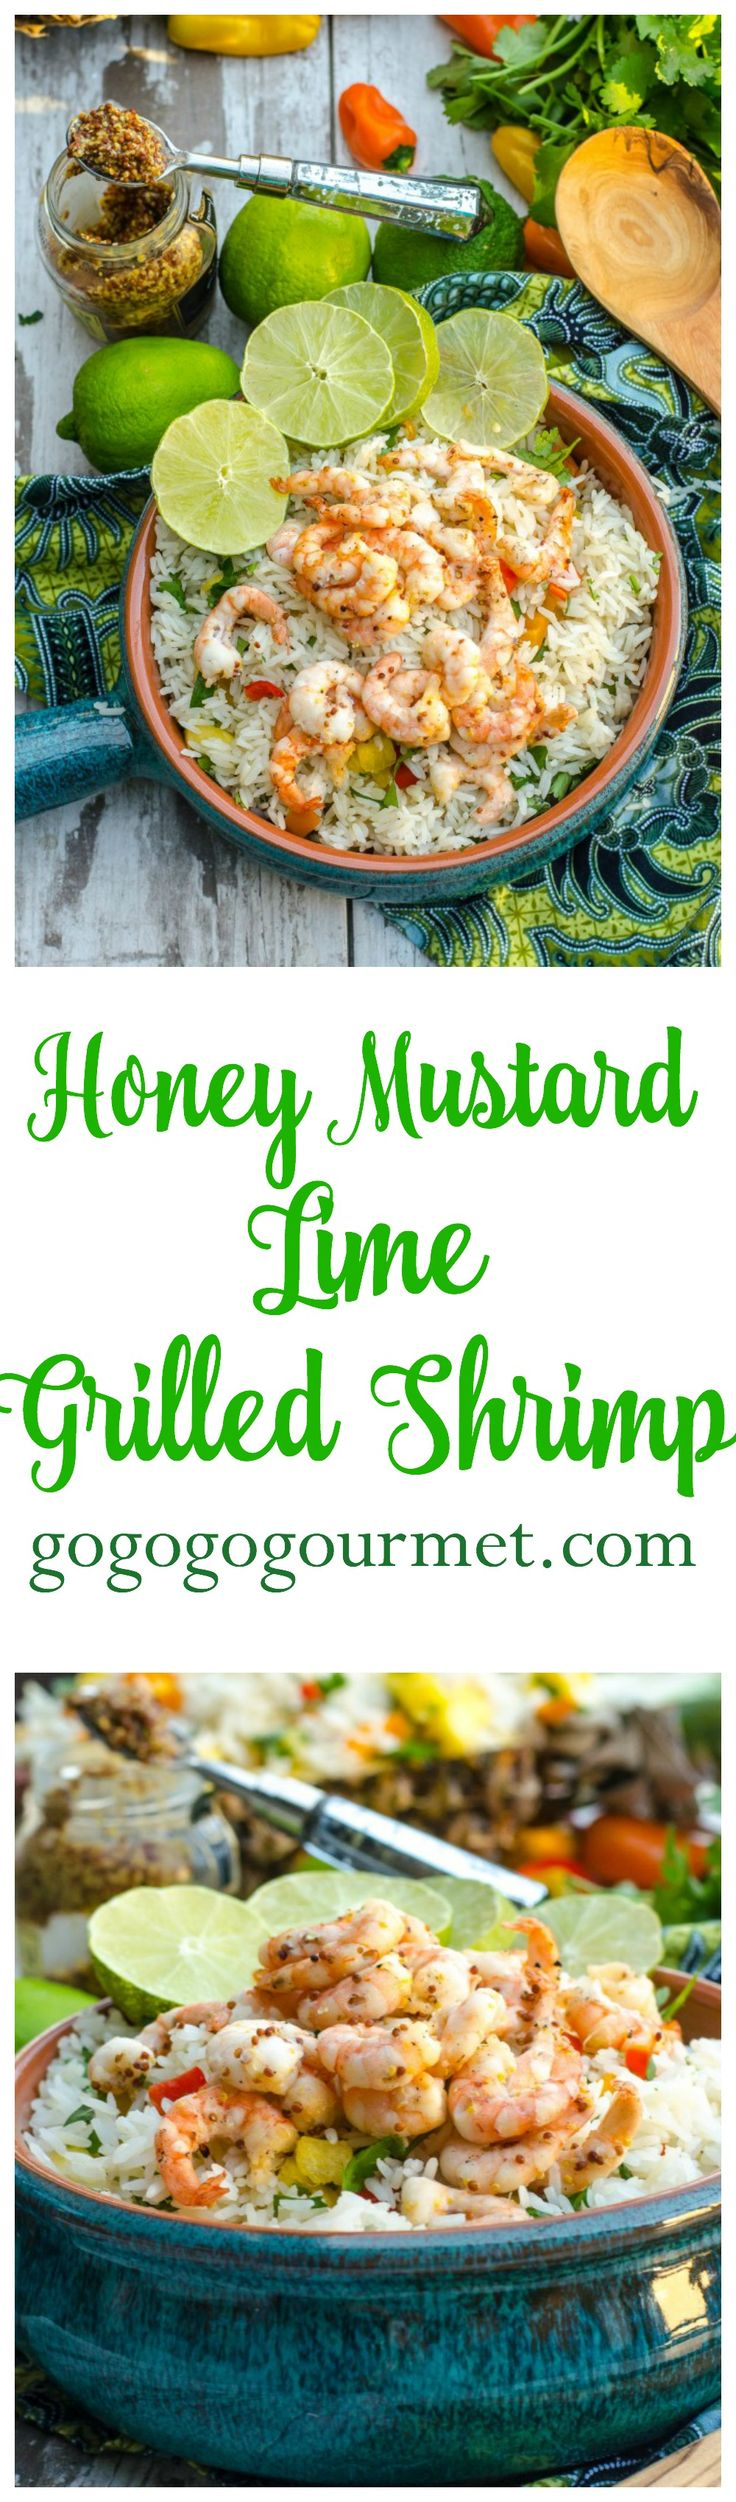 Perfect as an easy appetizer, or pair it with my Pineapple Cilantro Rice for a tropical dinner! Honey Mustard Lime Grilled Shrimp | Go Go Go Gourmet @gogogogourmet